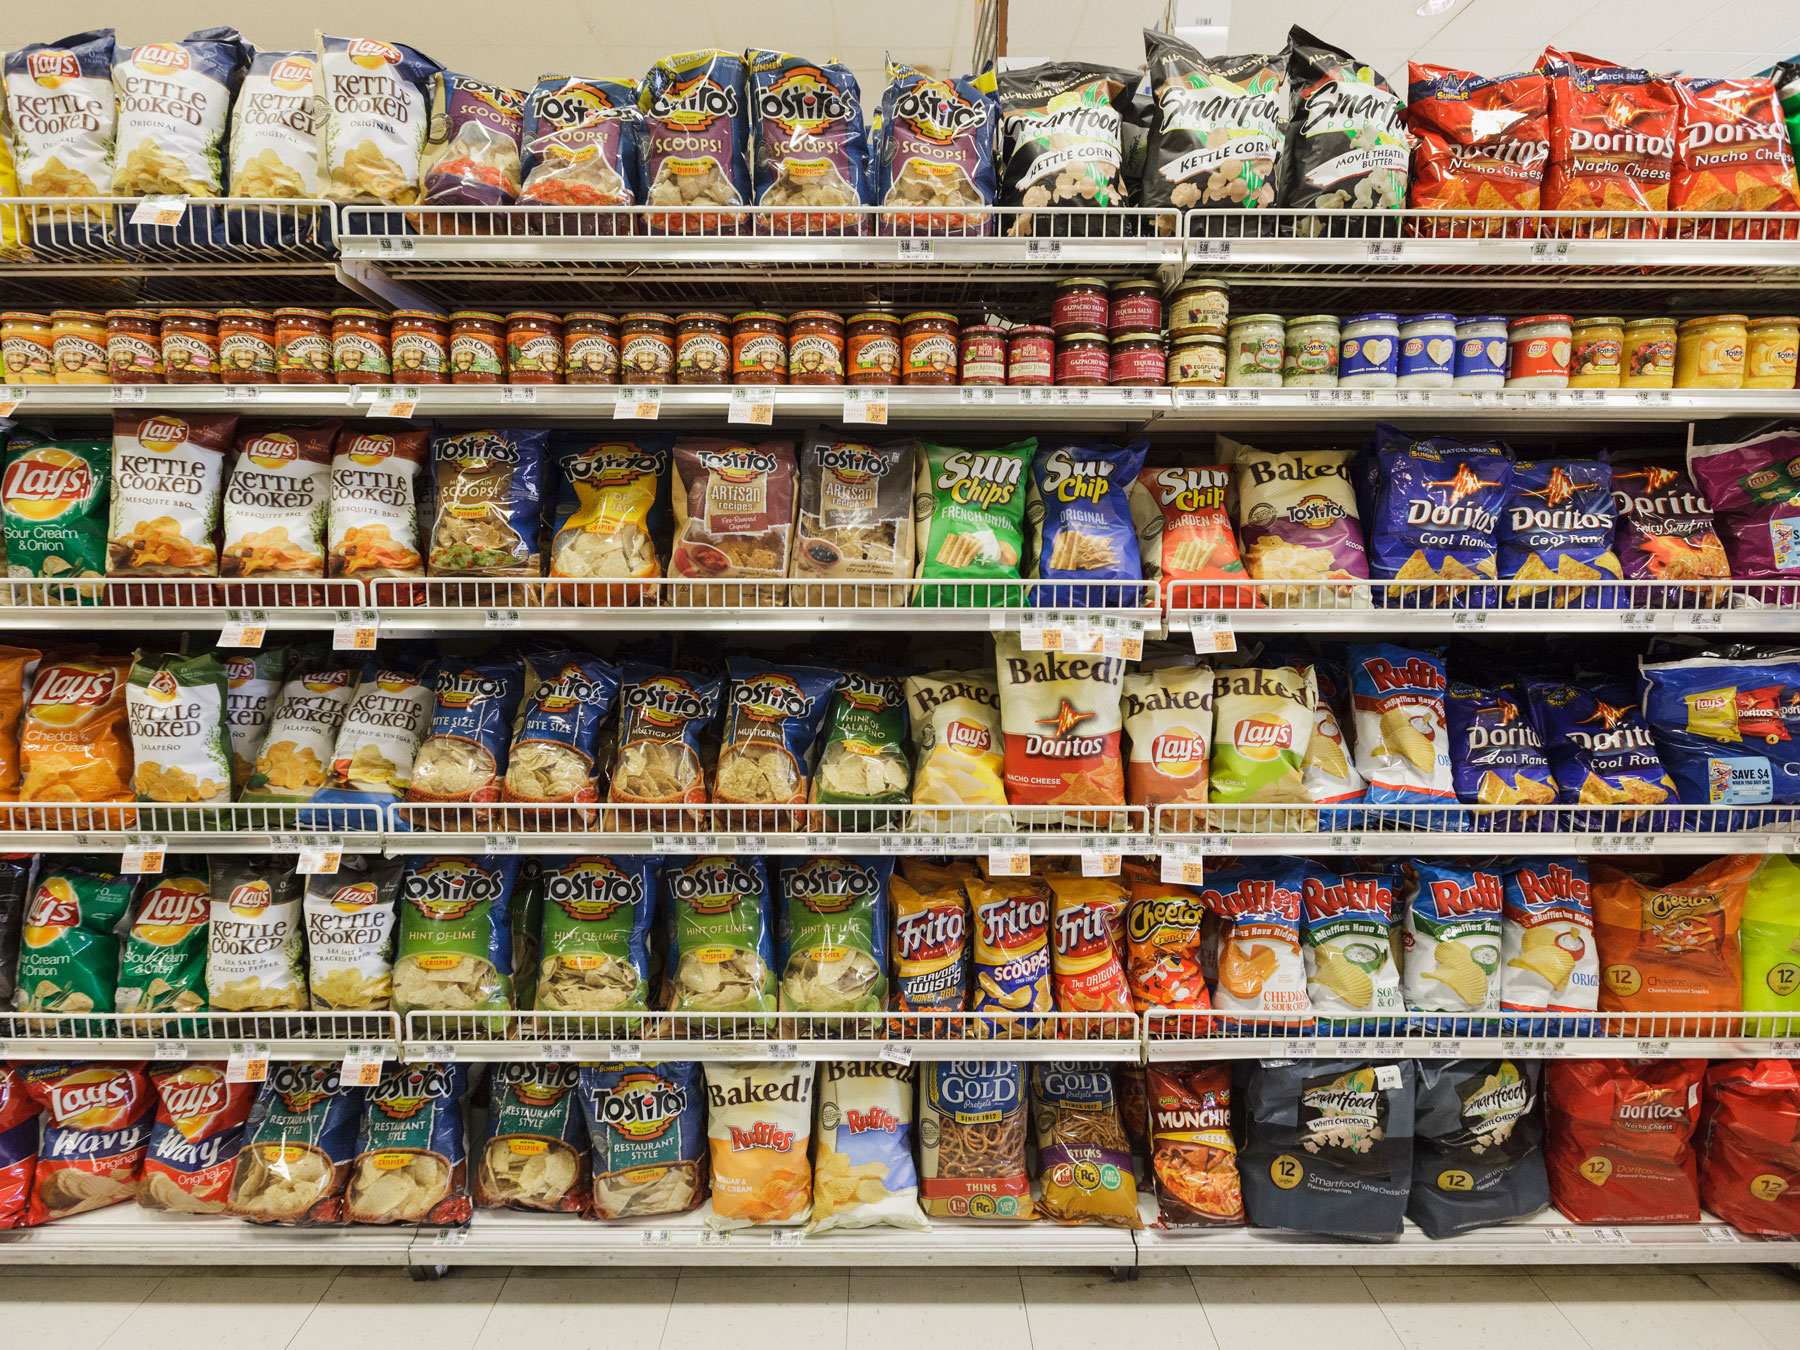 Study Says Putting Exercise Suggestions on Food Labels Is a Good Idea